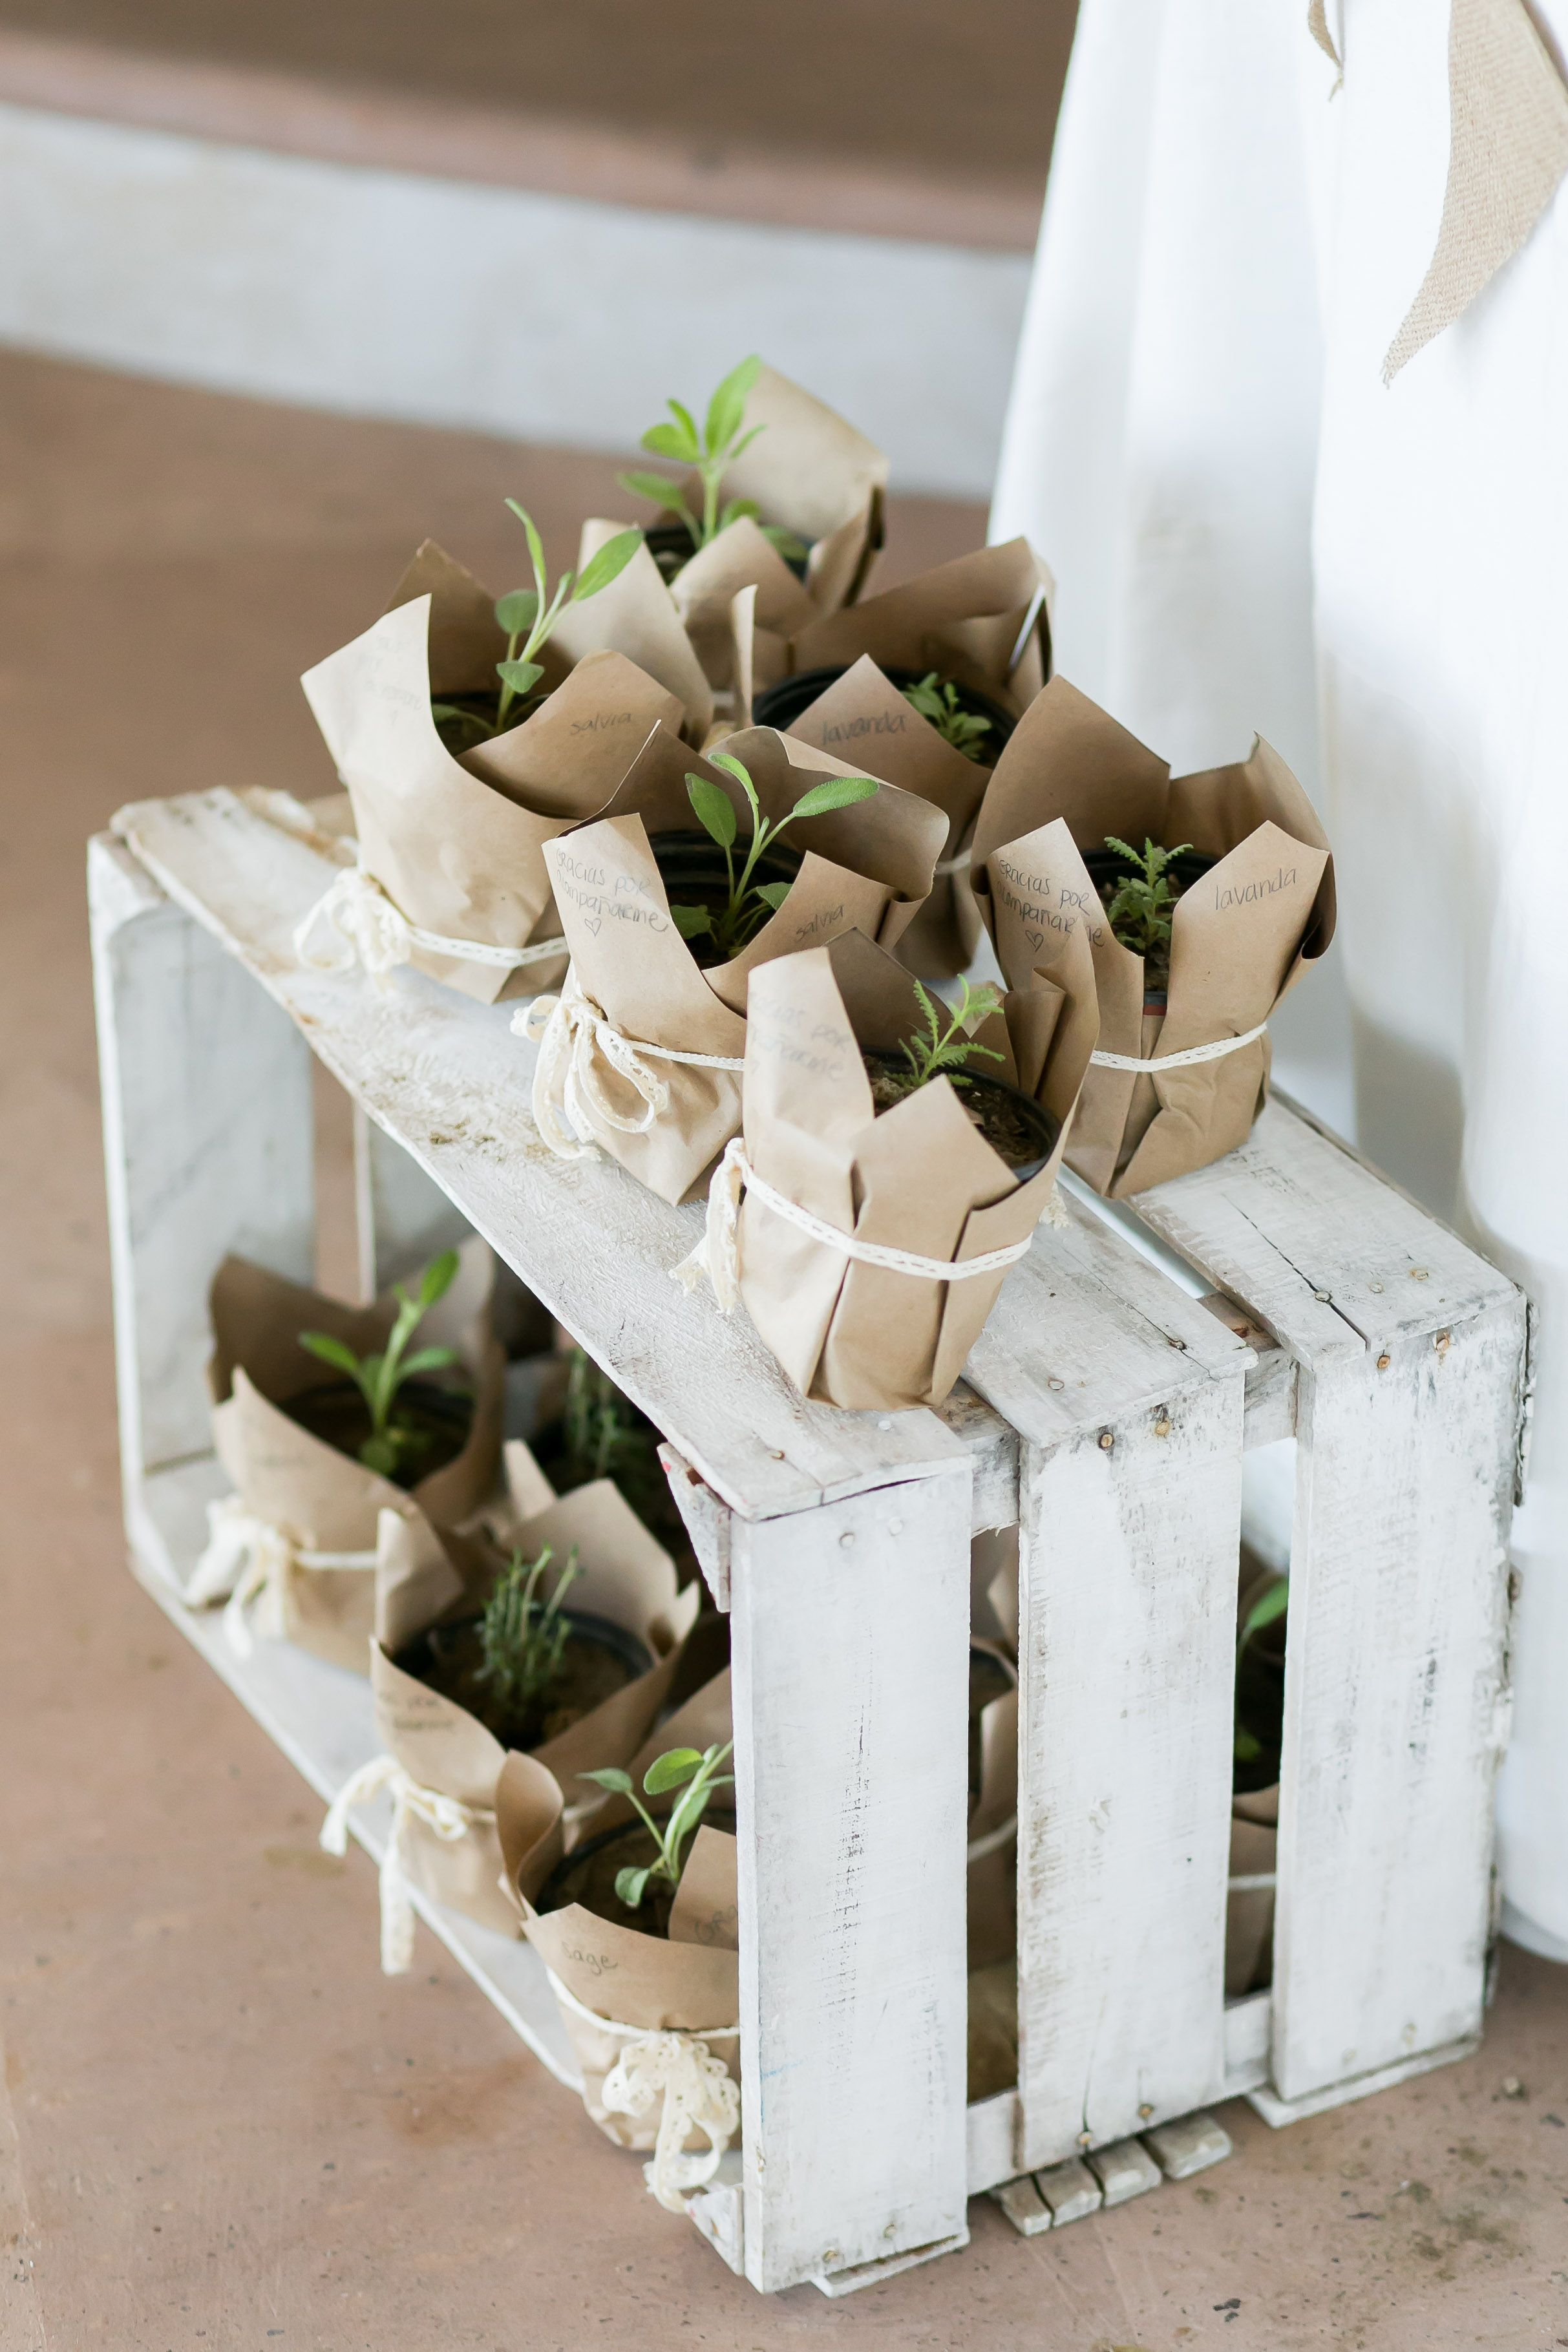 Favors - sage, lavender and thyme plants wrapped in recycled brown ...